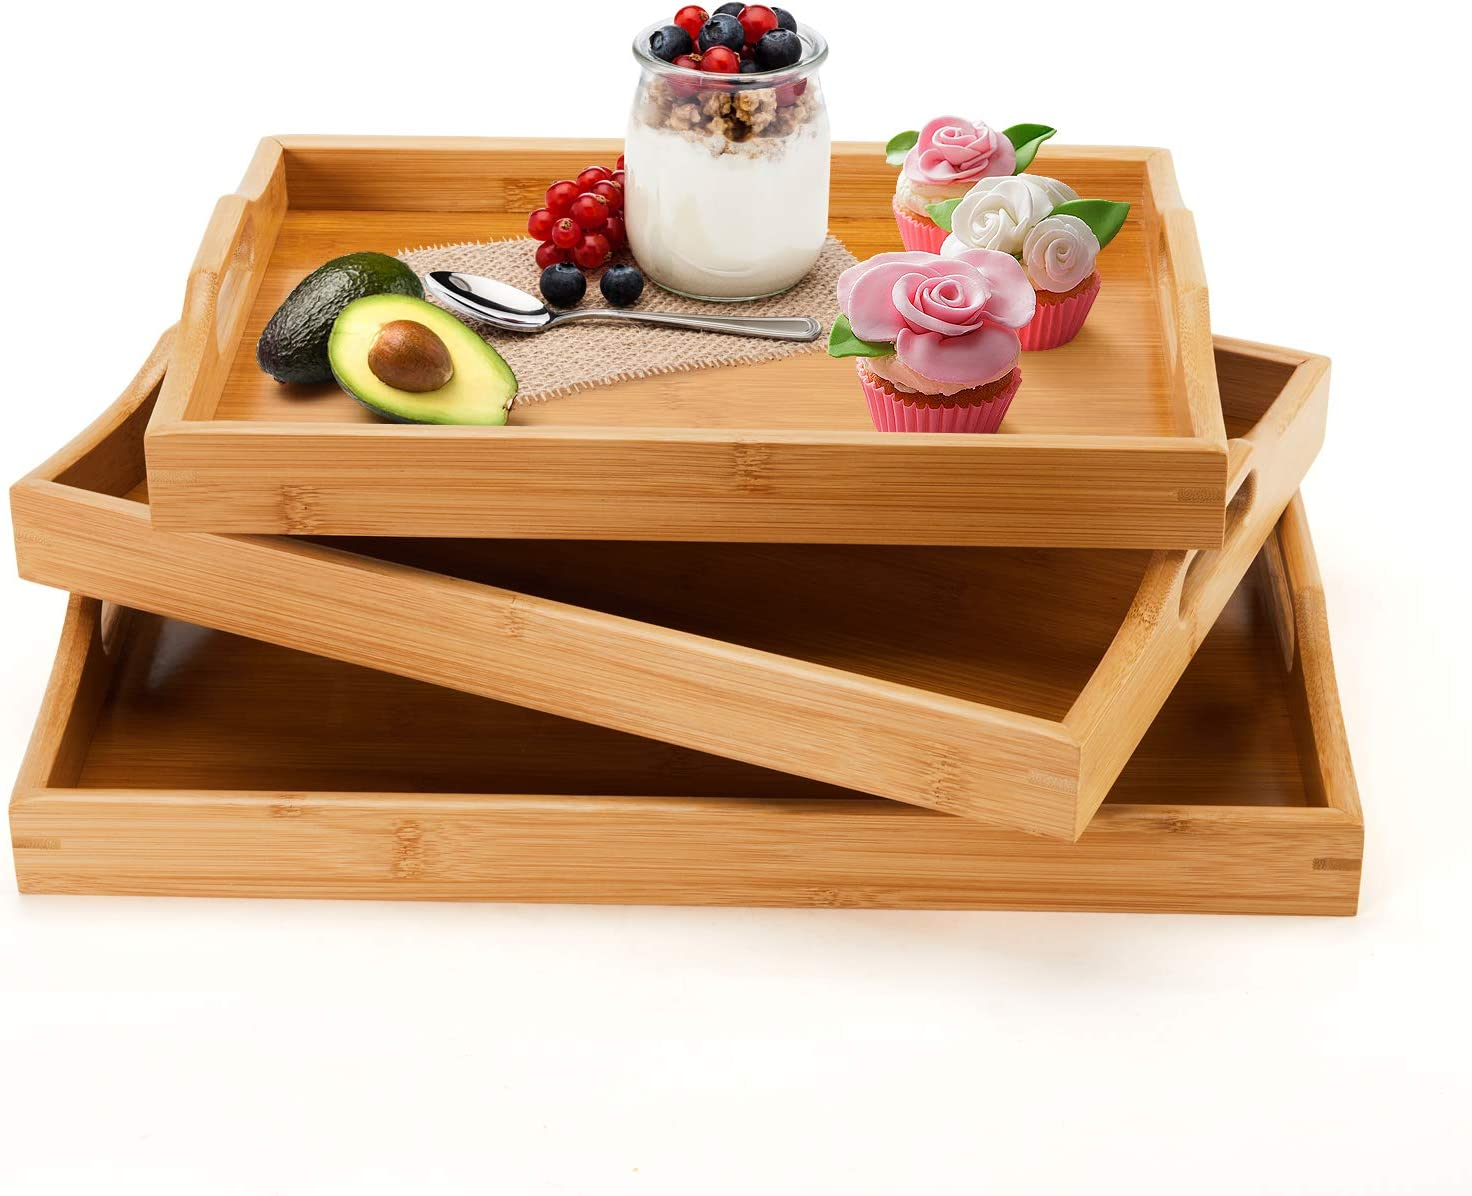 Bamboo Serving Tray with Handles, Large Food Trays for Eating Breakfast, Set of 3 Coffee Table Ottoman Décor Tray